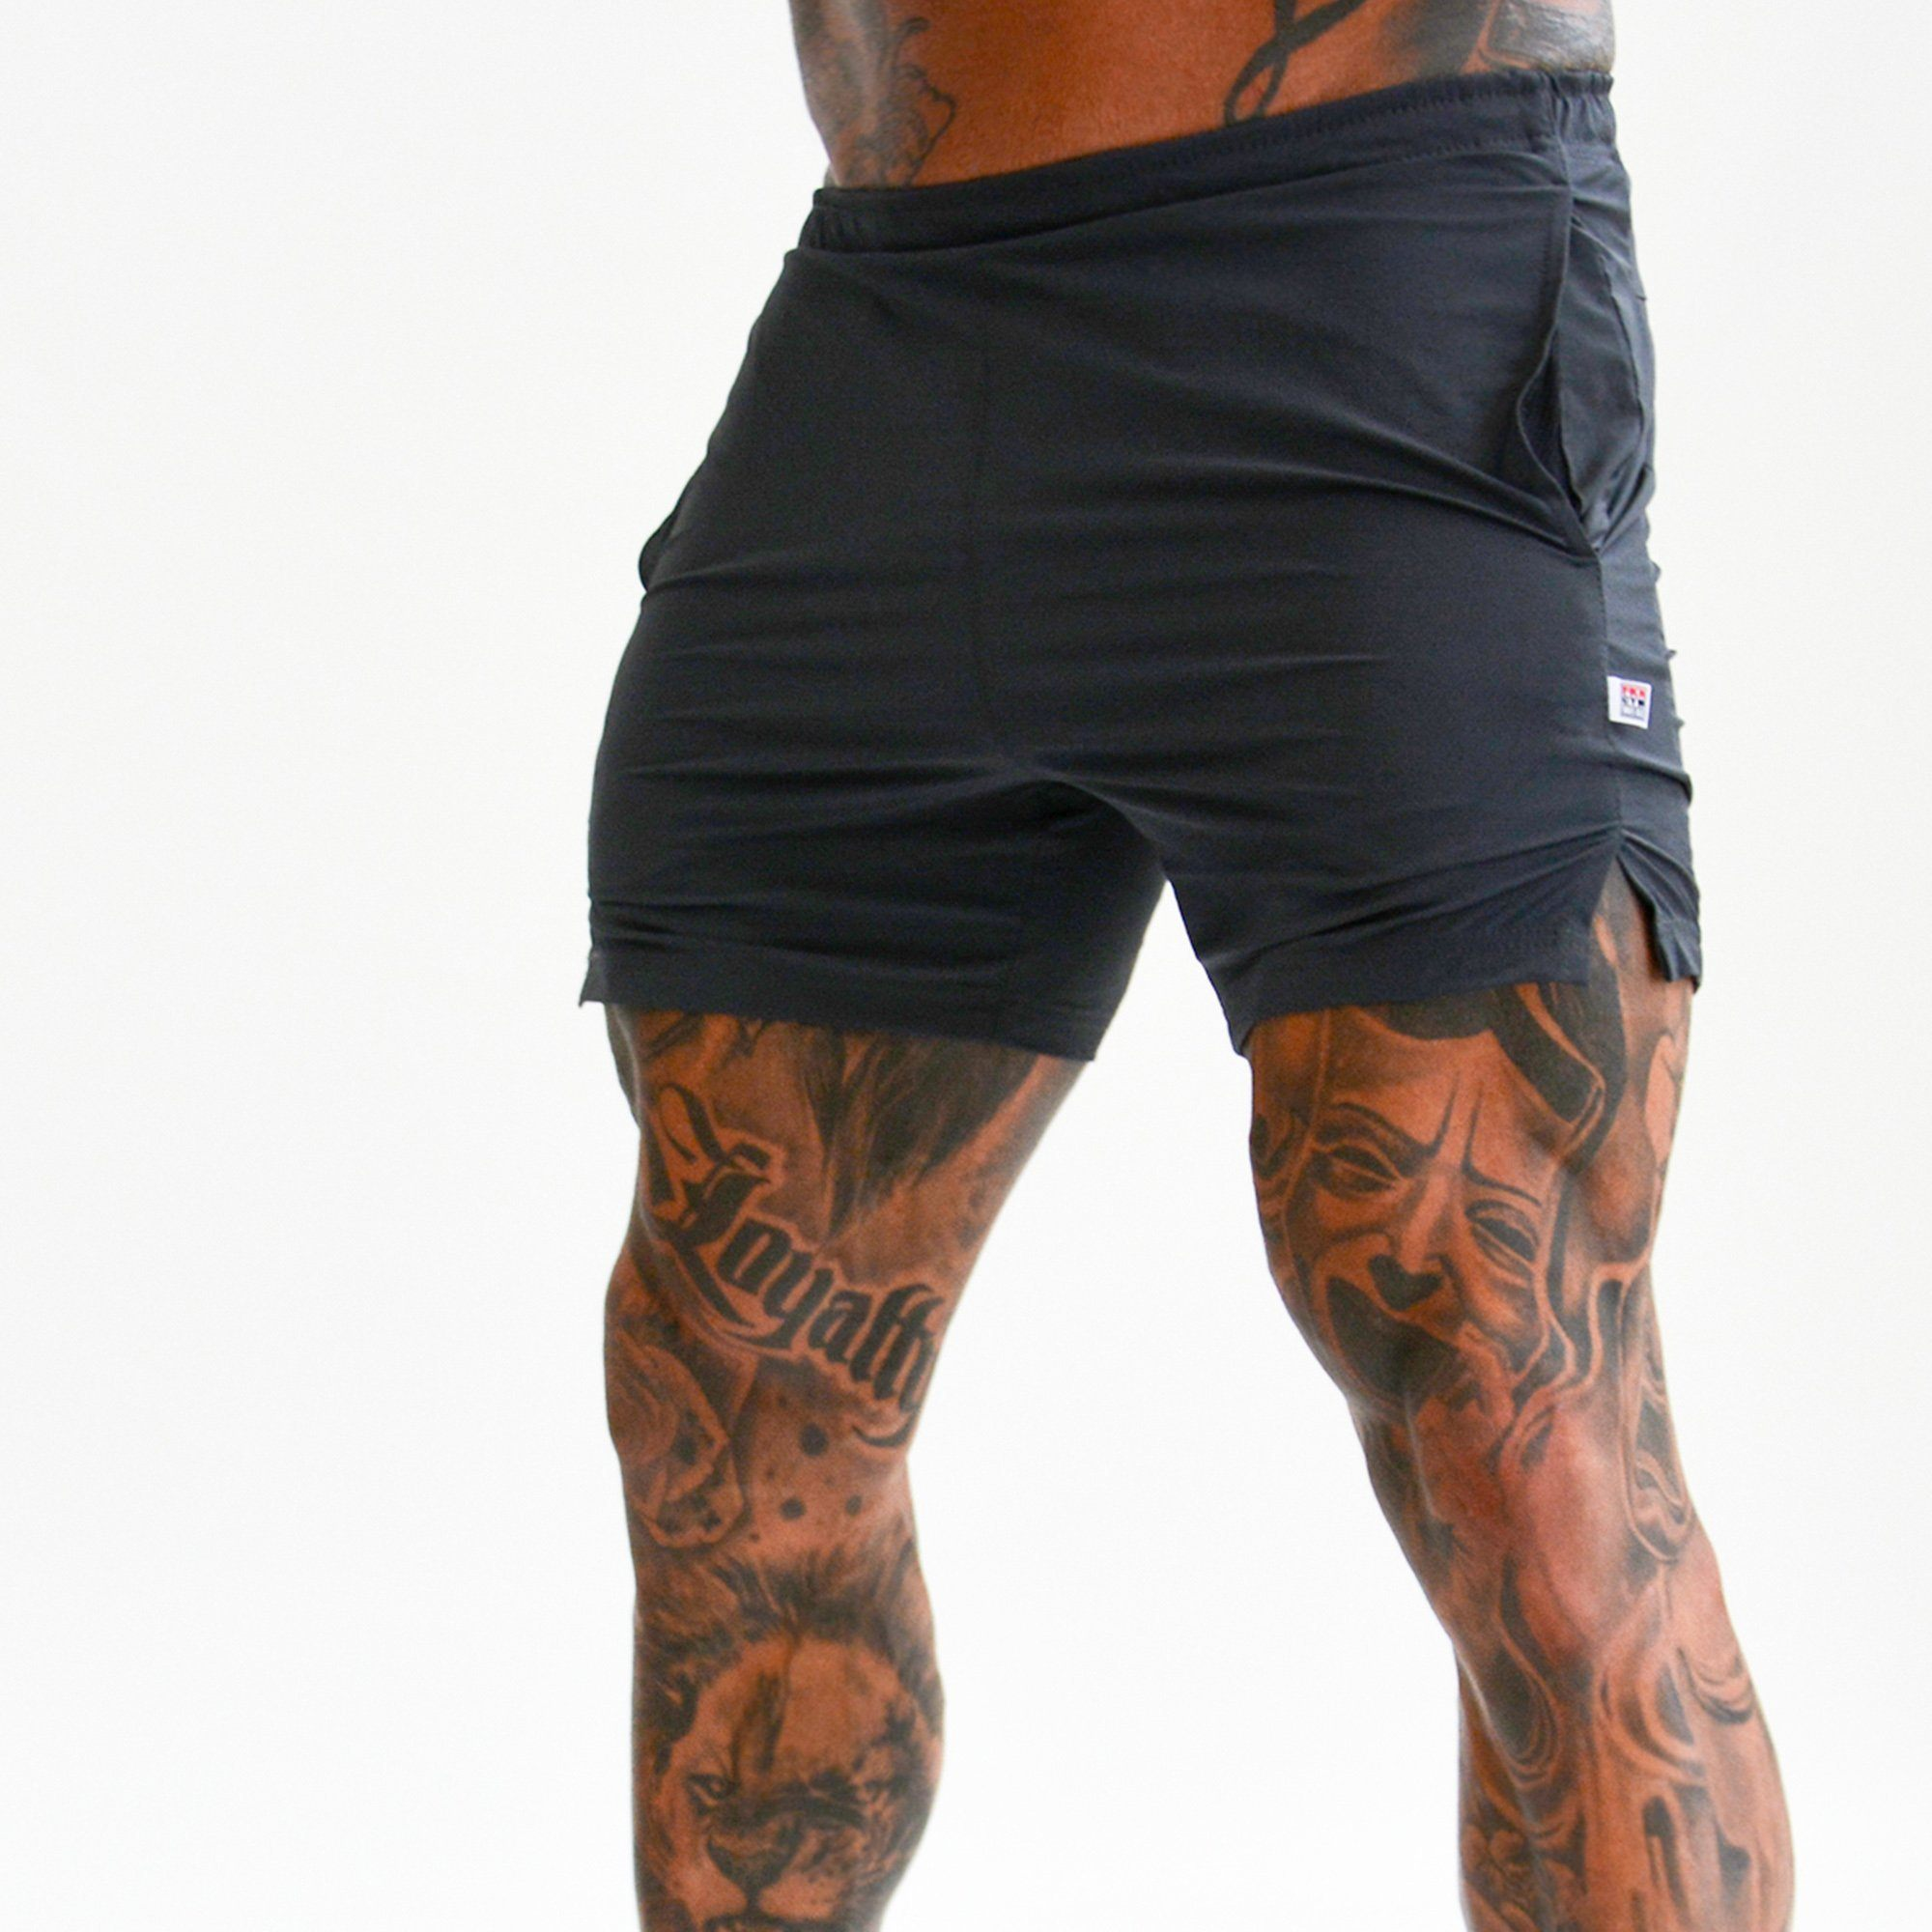 FKN Gym Wear Apollo Shorts - Grey